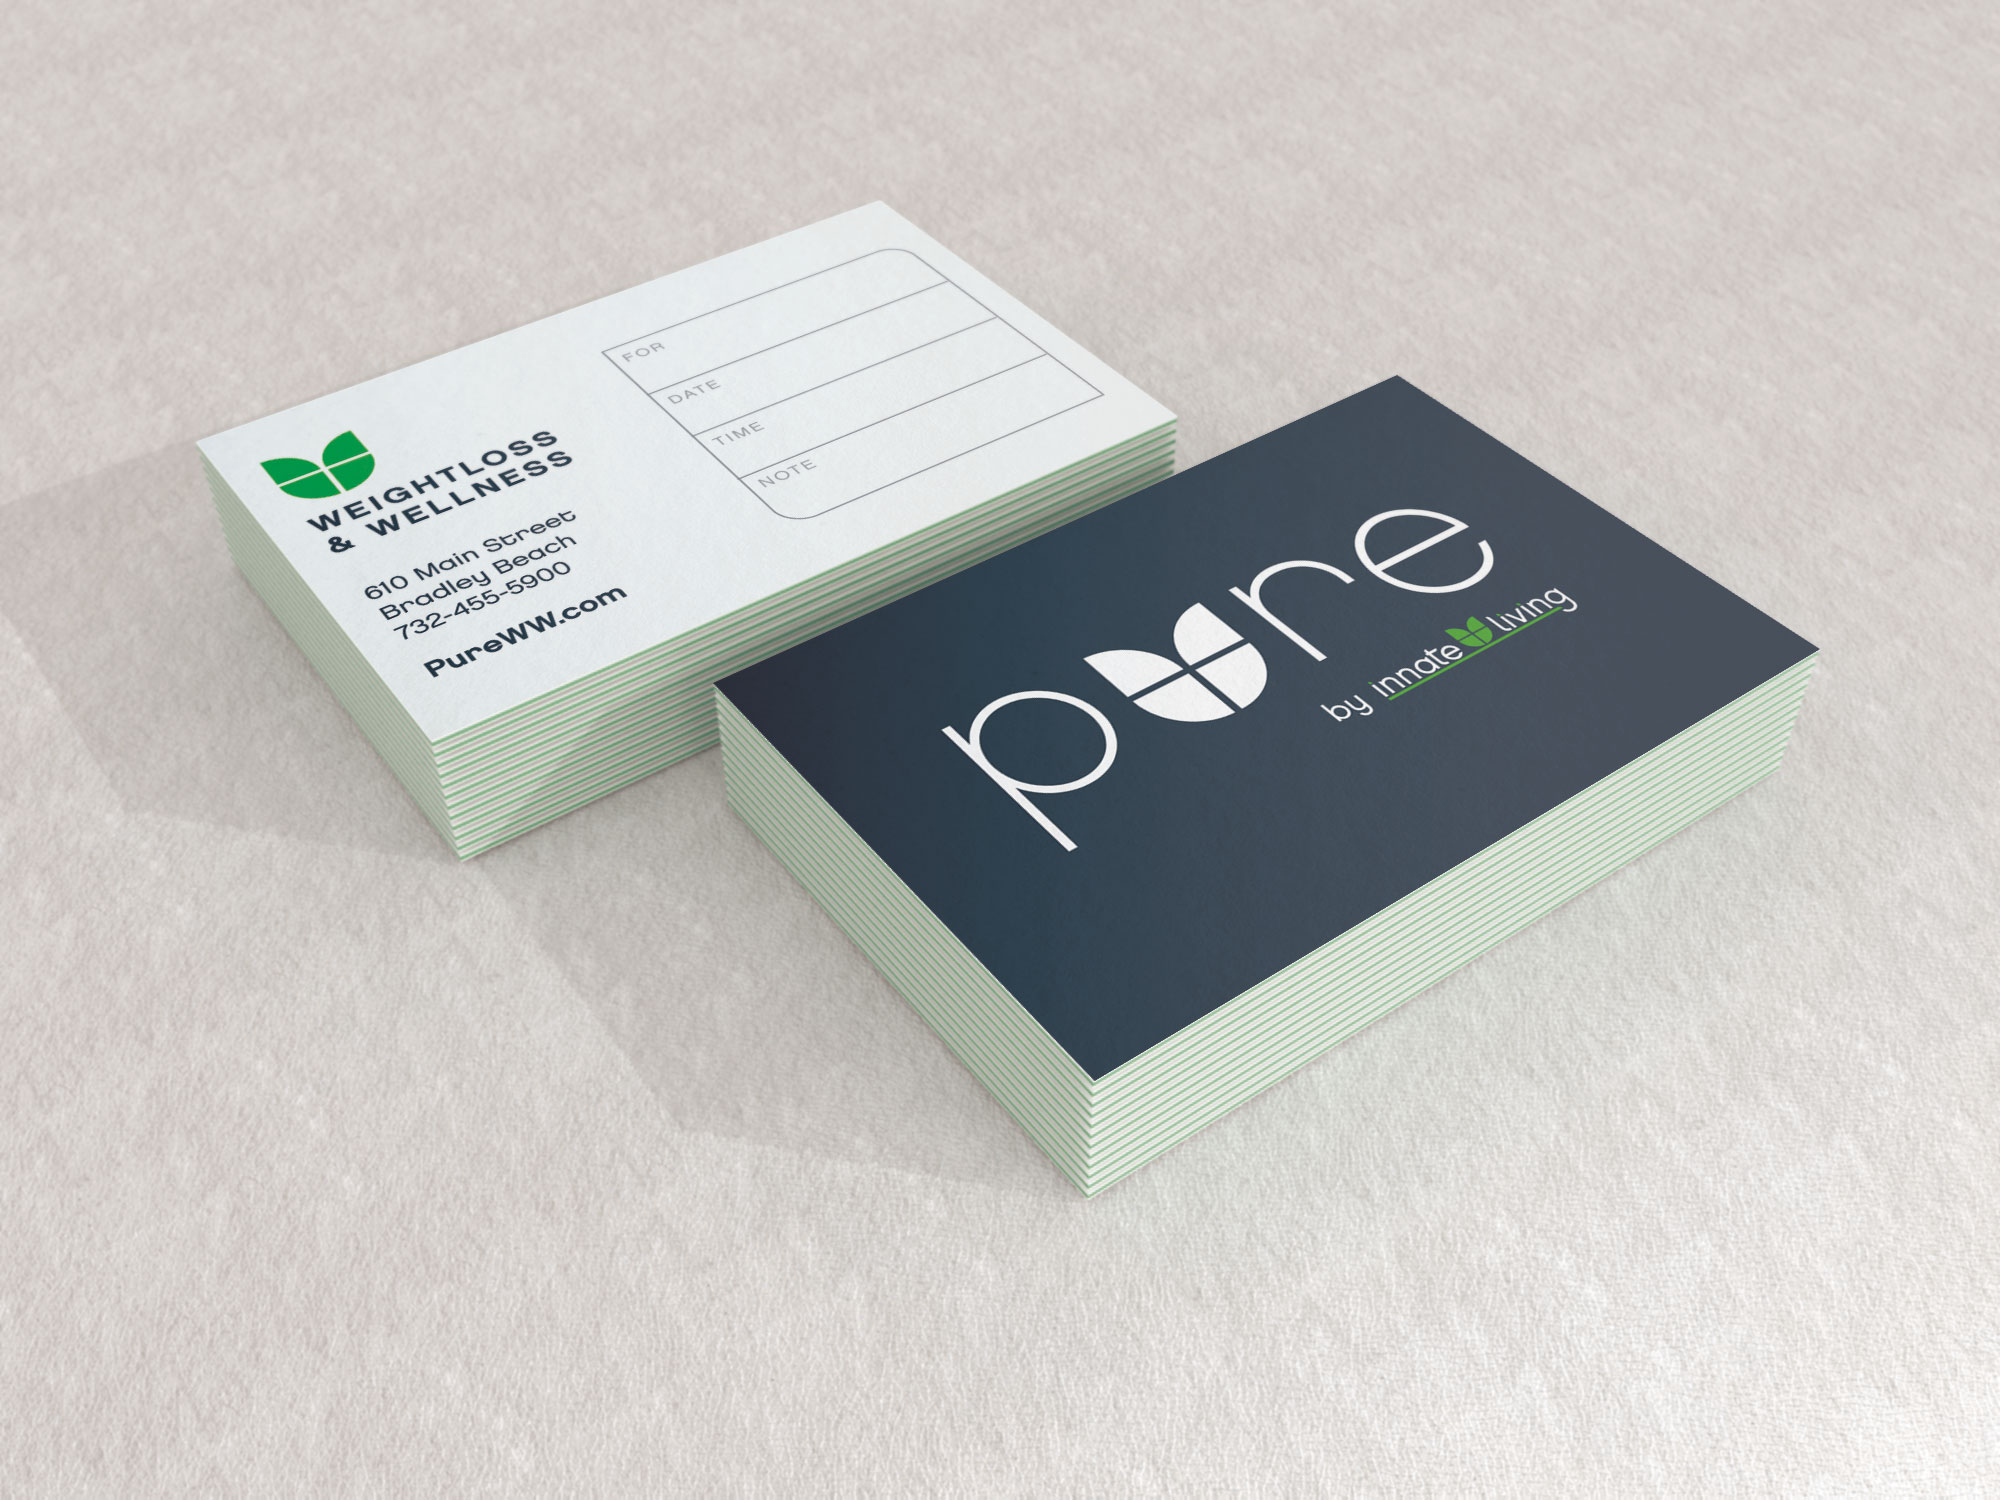 grass-creative-branding-business-cards-NYC-NJ-hire-us.jpg